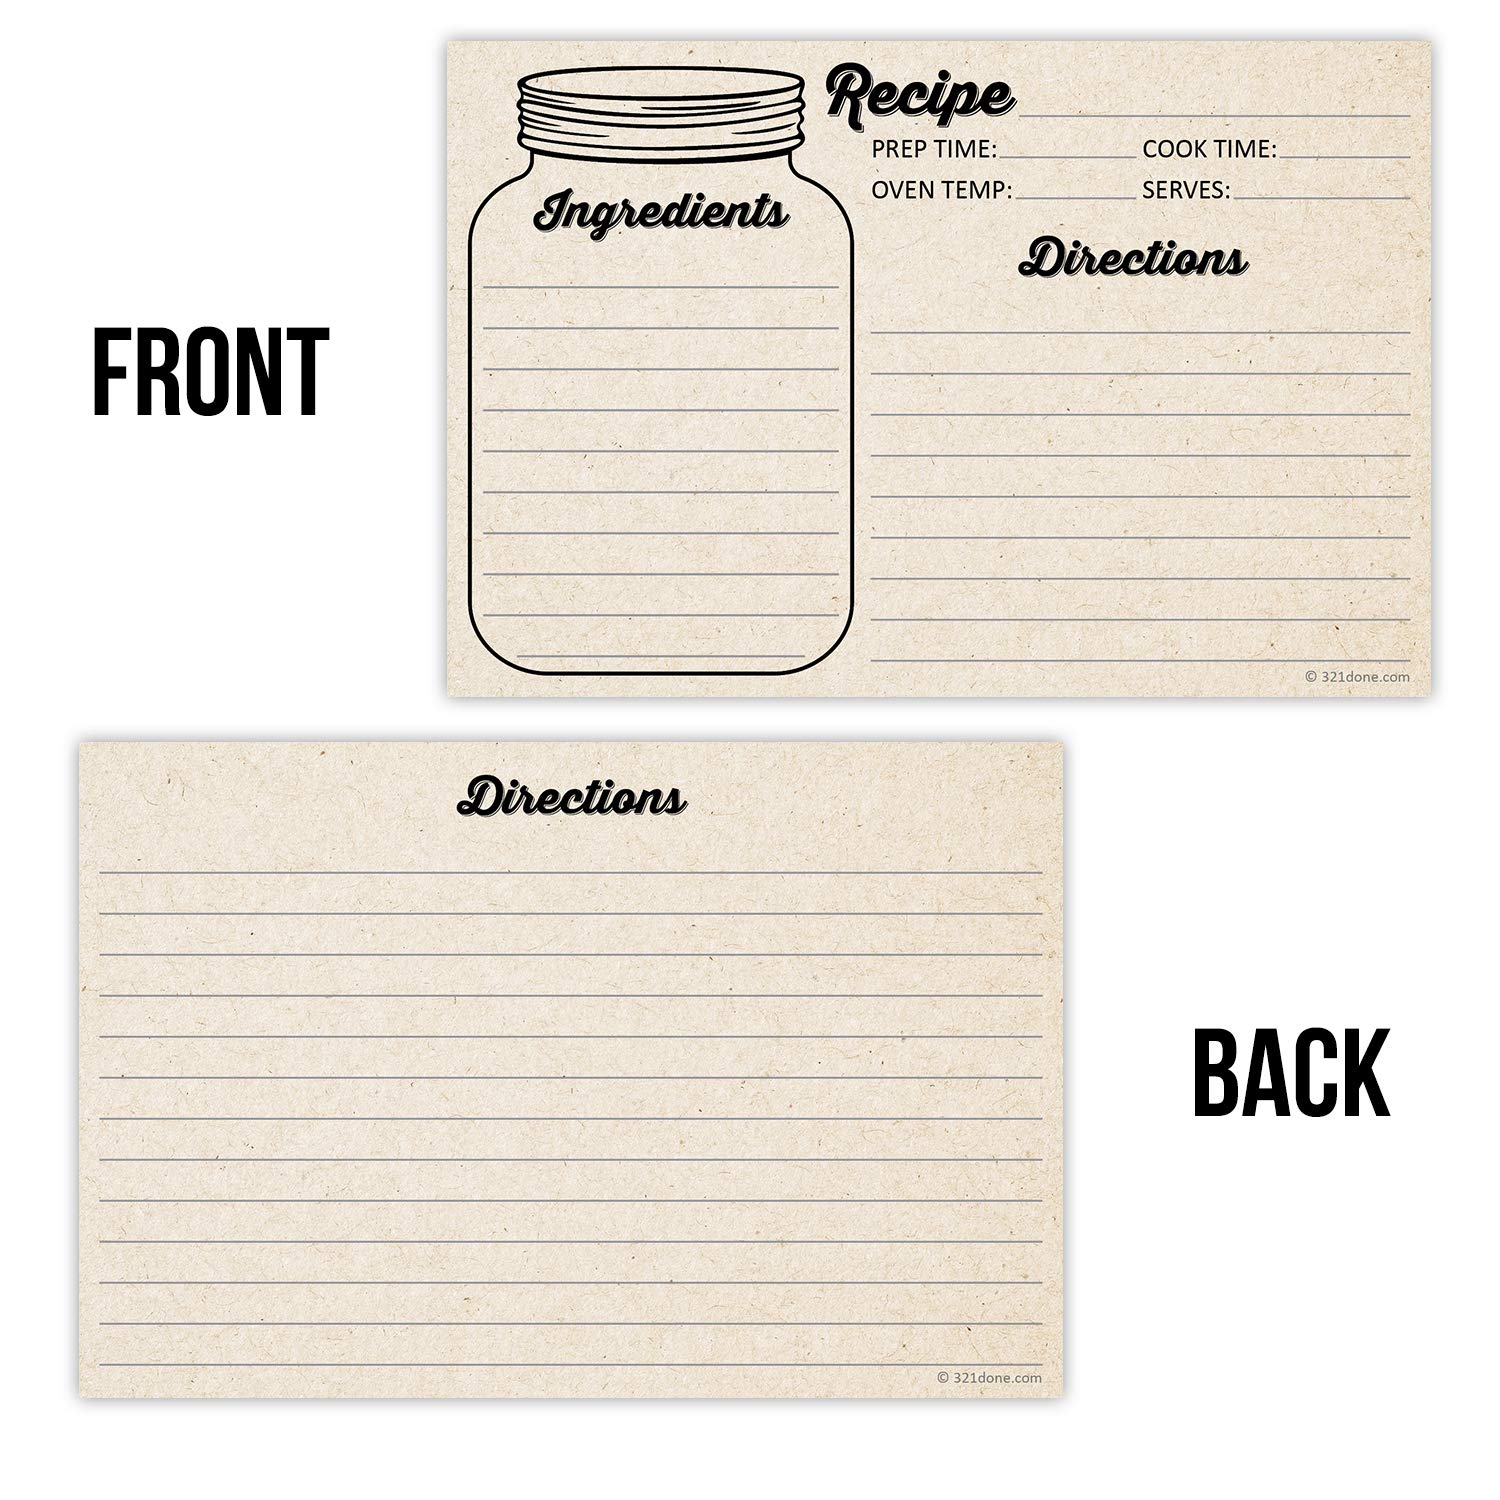 Recipe Cards Cupcake Design Double Sided 4x6 inch Pack of 50